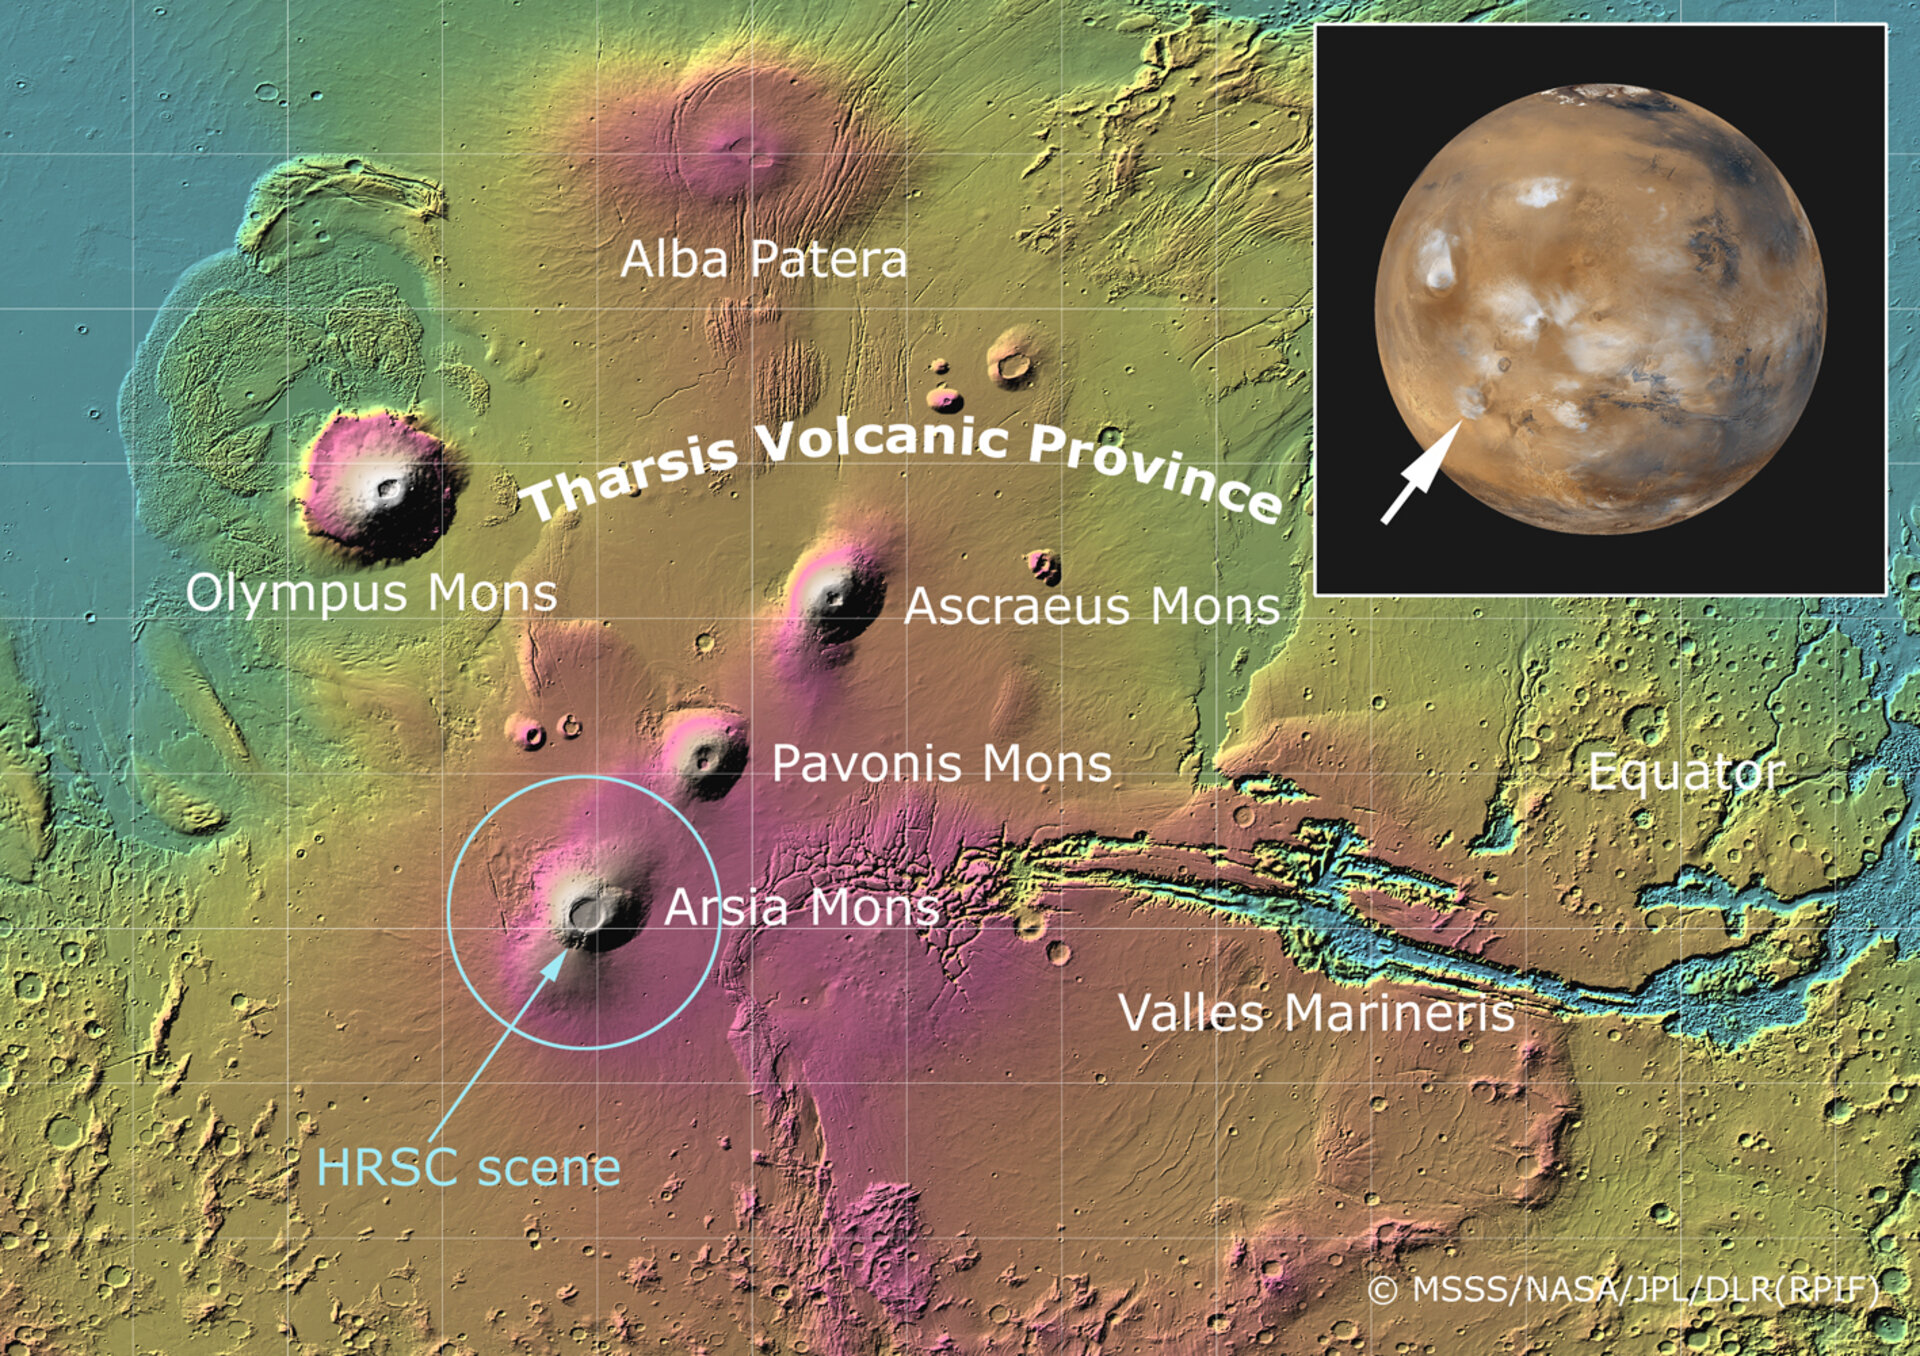 Location of Arsia Mons volcano